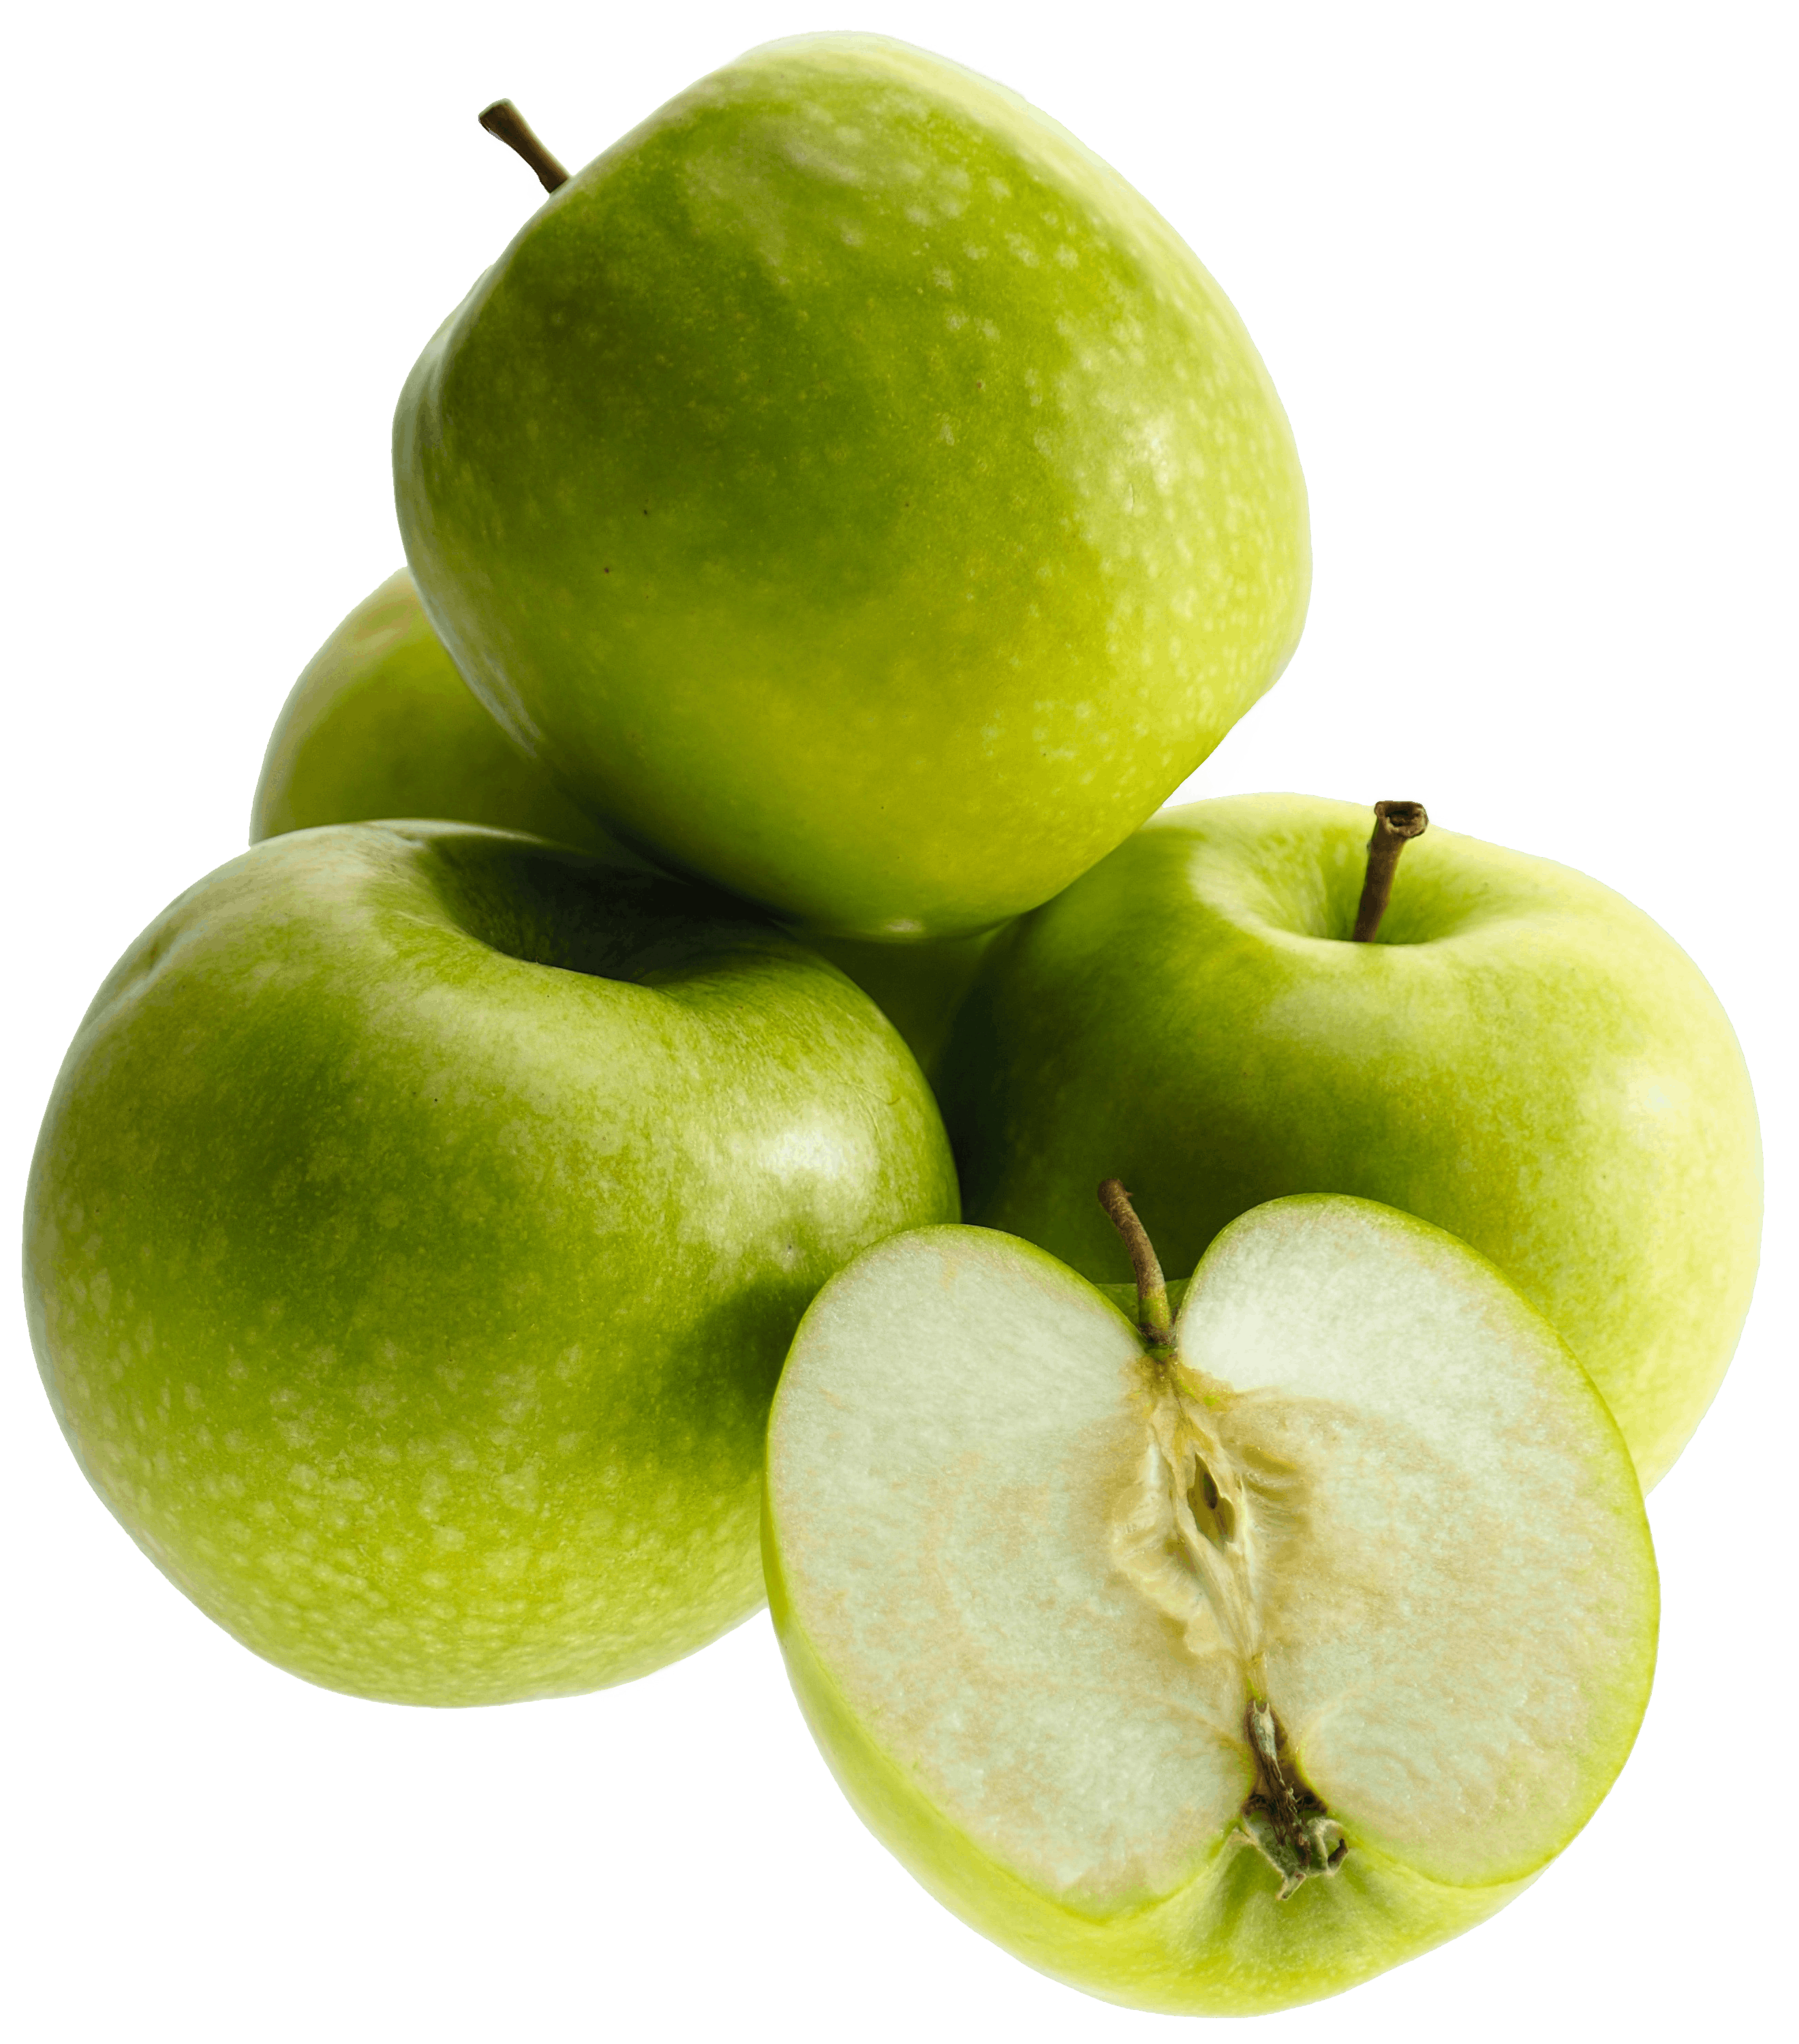 Gratis stockfoto met appels, close-up, eten, fris